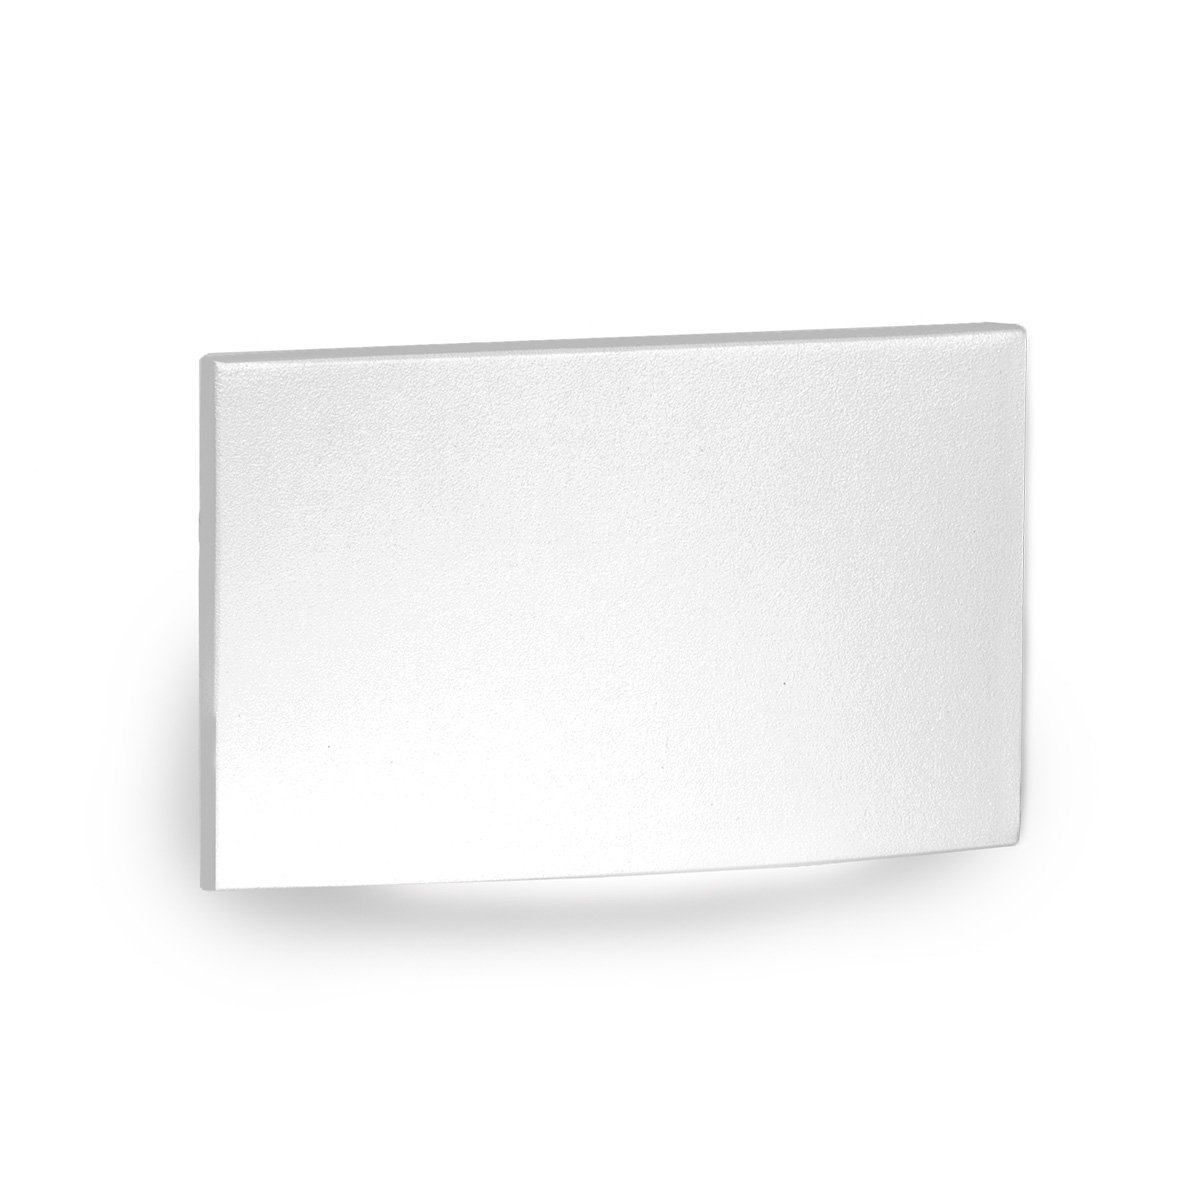 WAC Lighting 4031-30WT WAC Landscape LED Low Voltage Horizontal Scoop Step and Wall Light 3000K in White